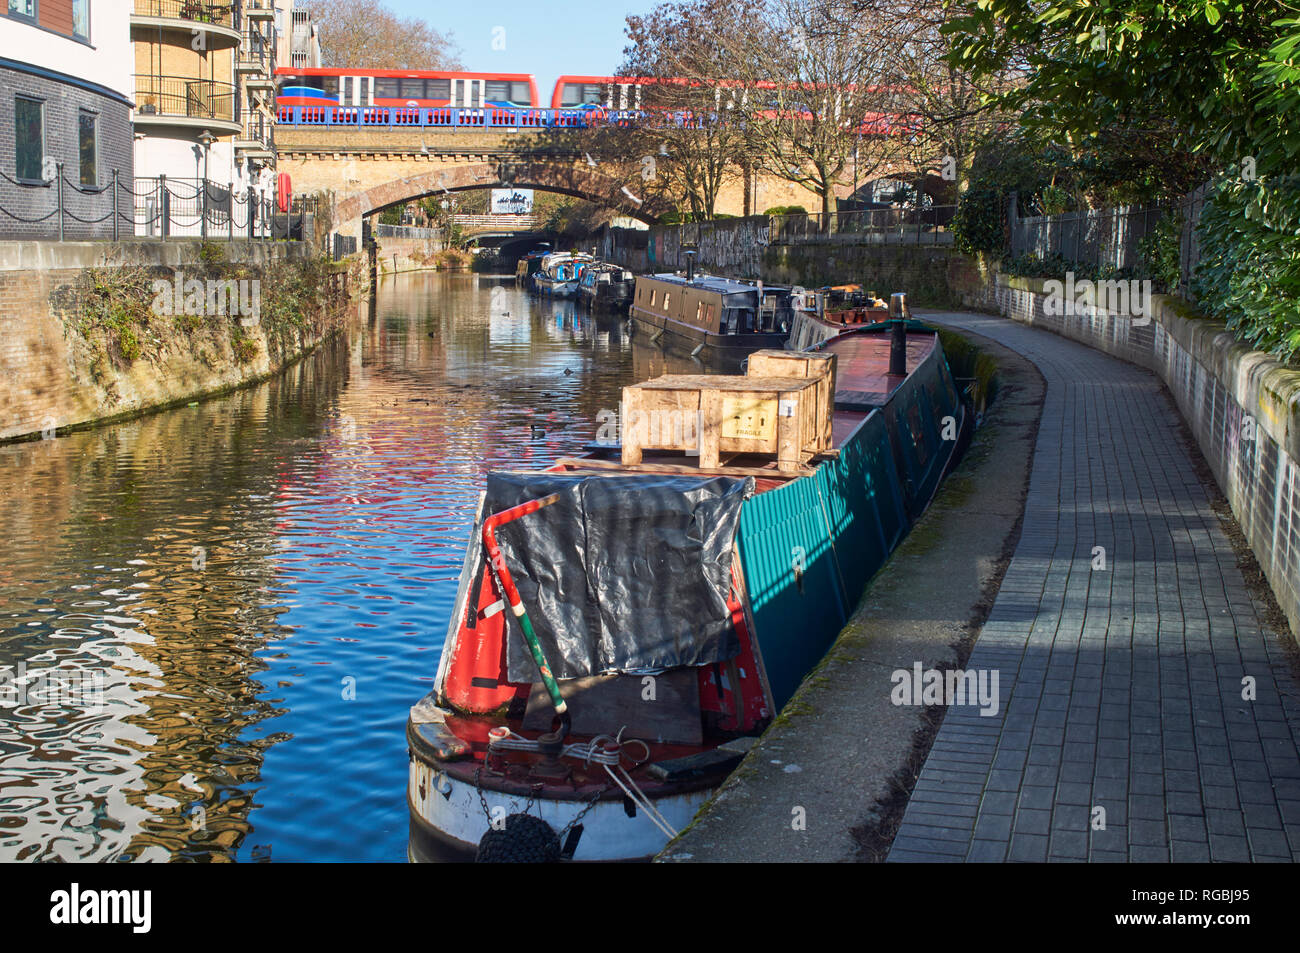 Limehouse Cut, Limehouse, East London UK, with narrowboats and the Docklands Light Railway crossing in background - Stock Image